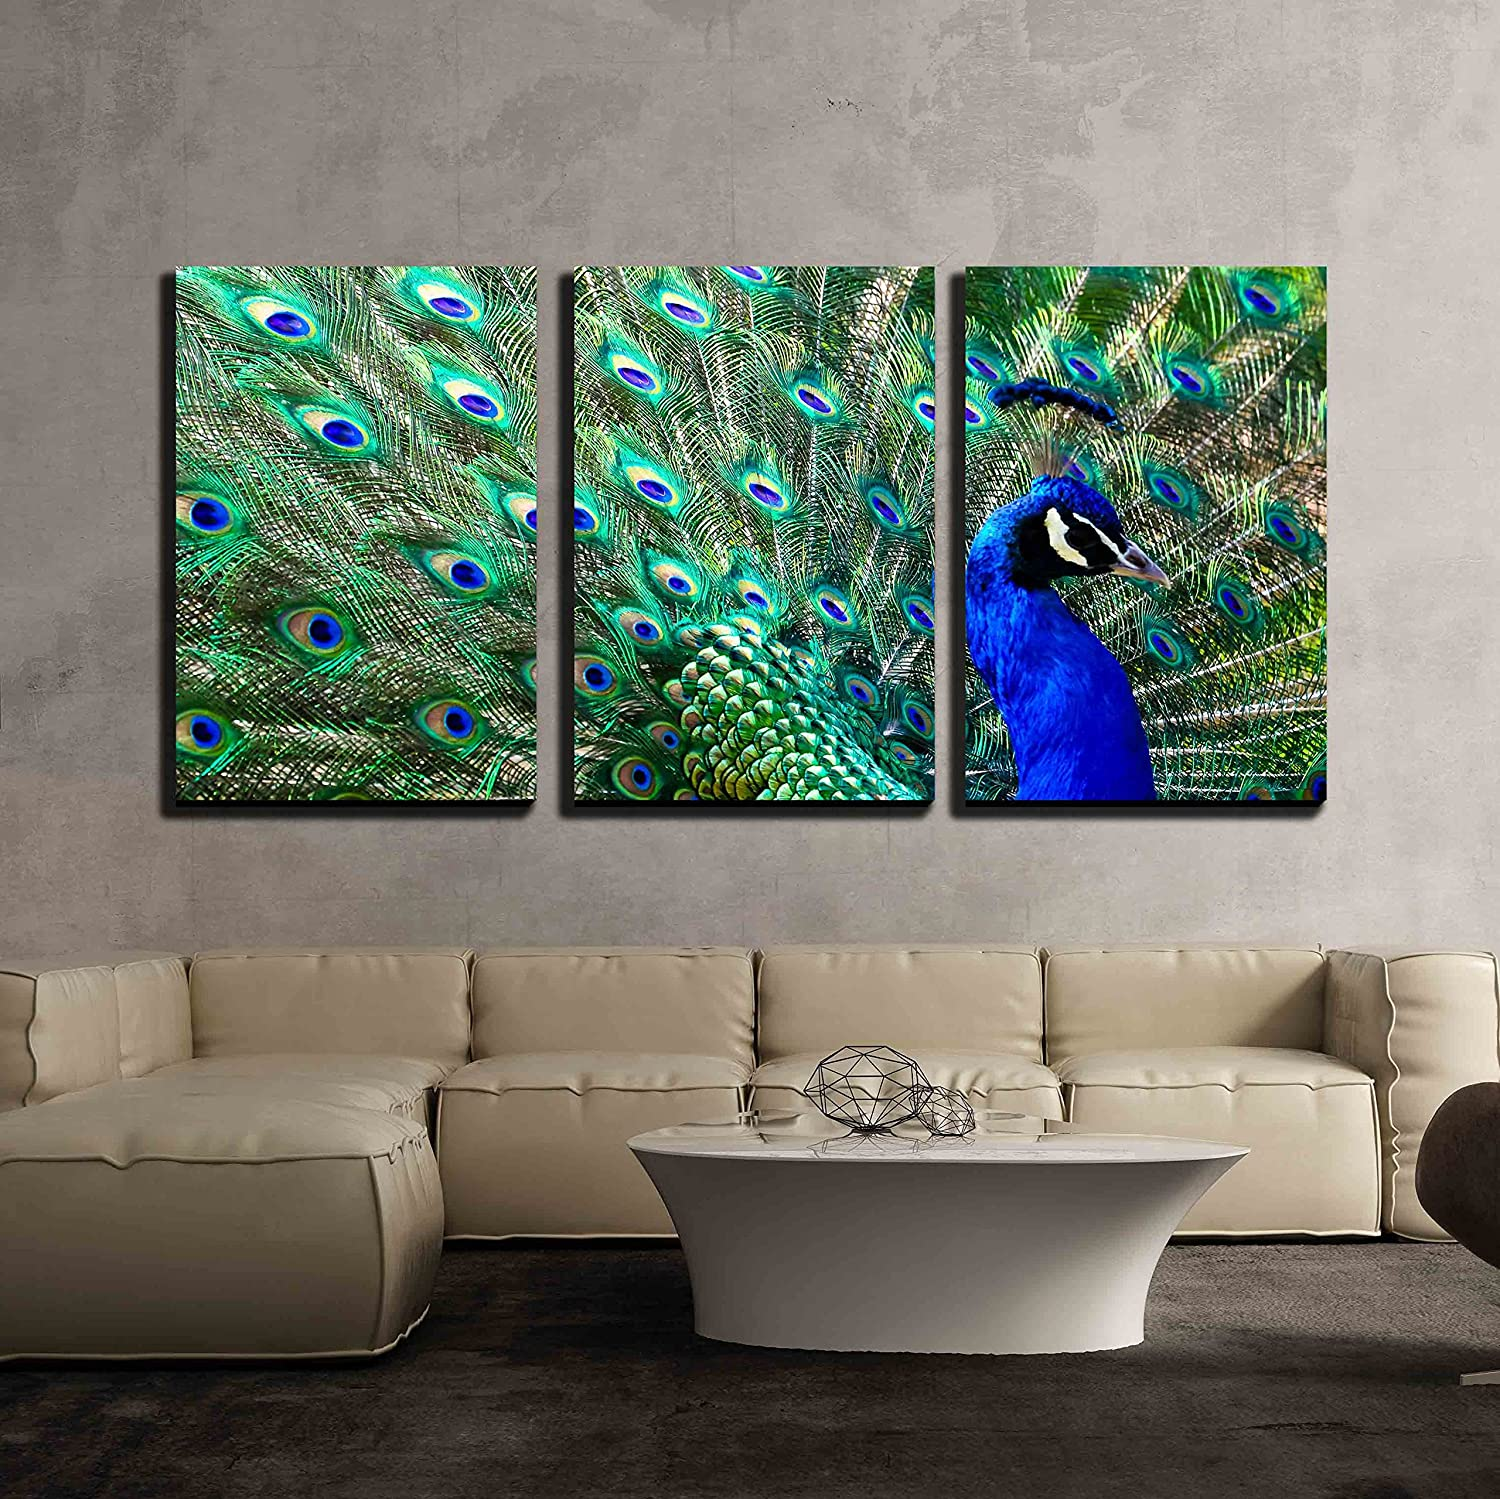 Wall26 3 Piece Canvas Wall Art Male Peacock Displaying His Colorful Feathers Modern Home Art Stretched And Framed Ready To Hang 16 X24 X3 Panels Home Kitchen